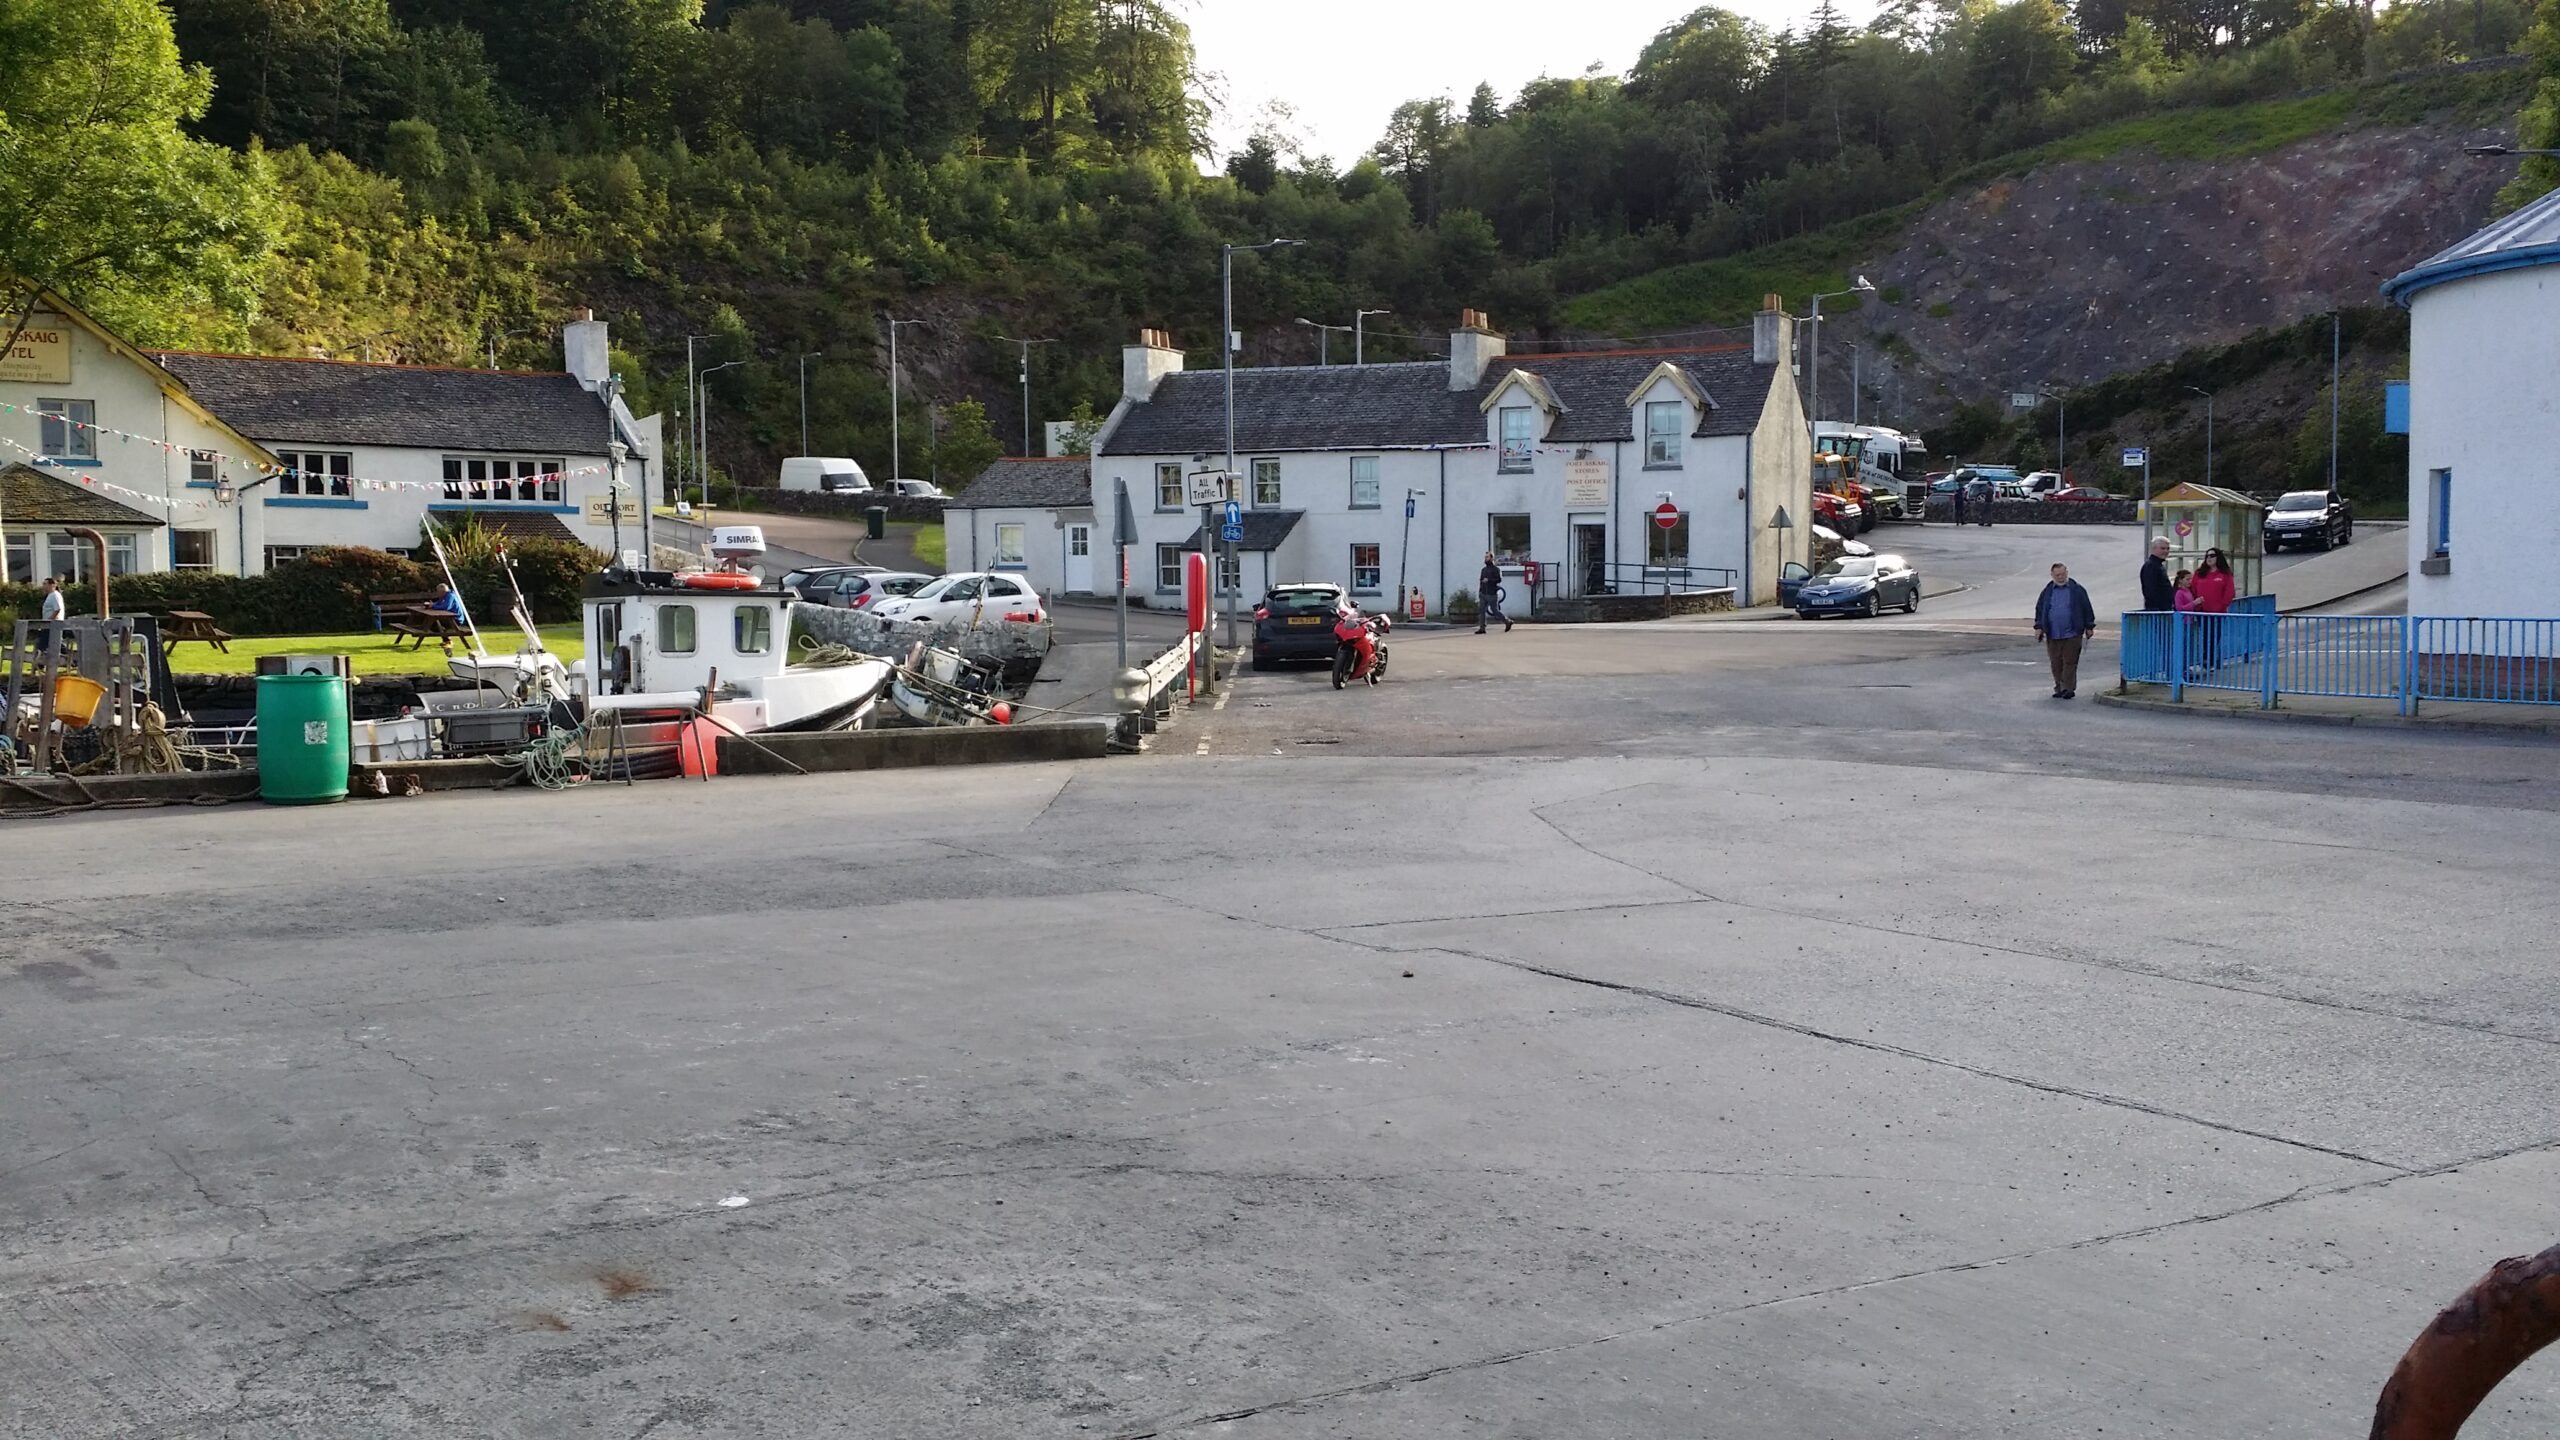 Village of Port Askaig founded 1767. View from dockside toward hotel at left, post office and shop at center, and dock buildings at right.